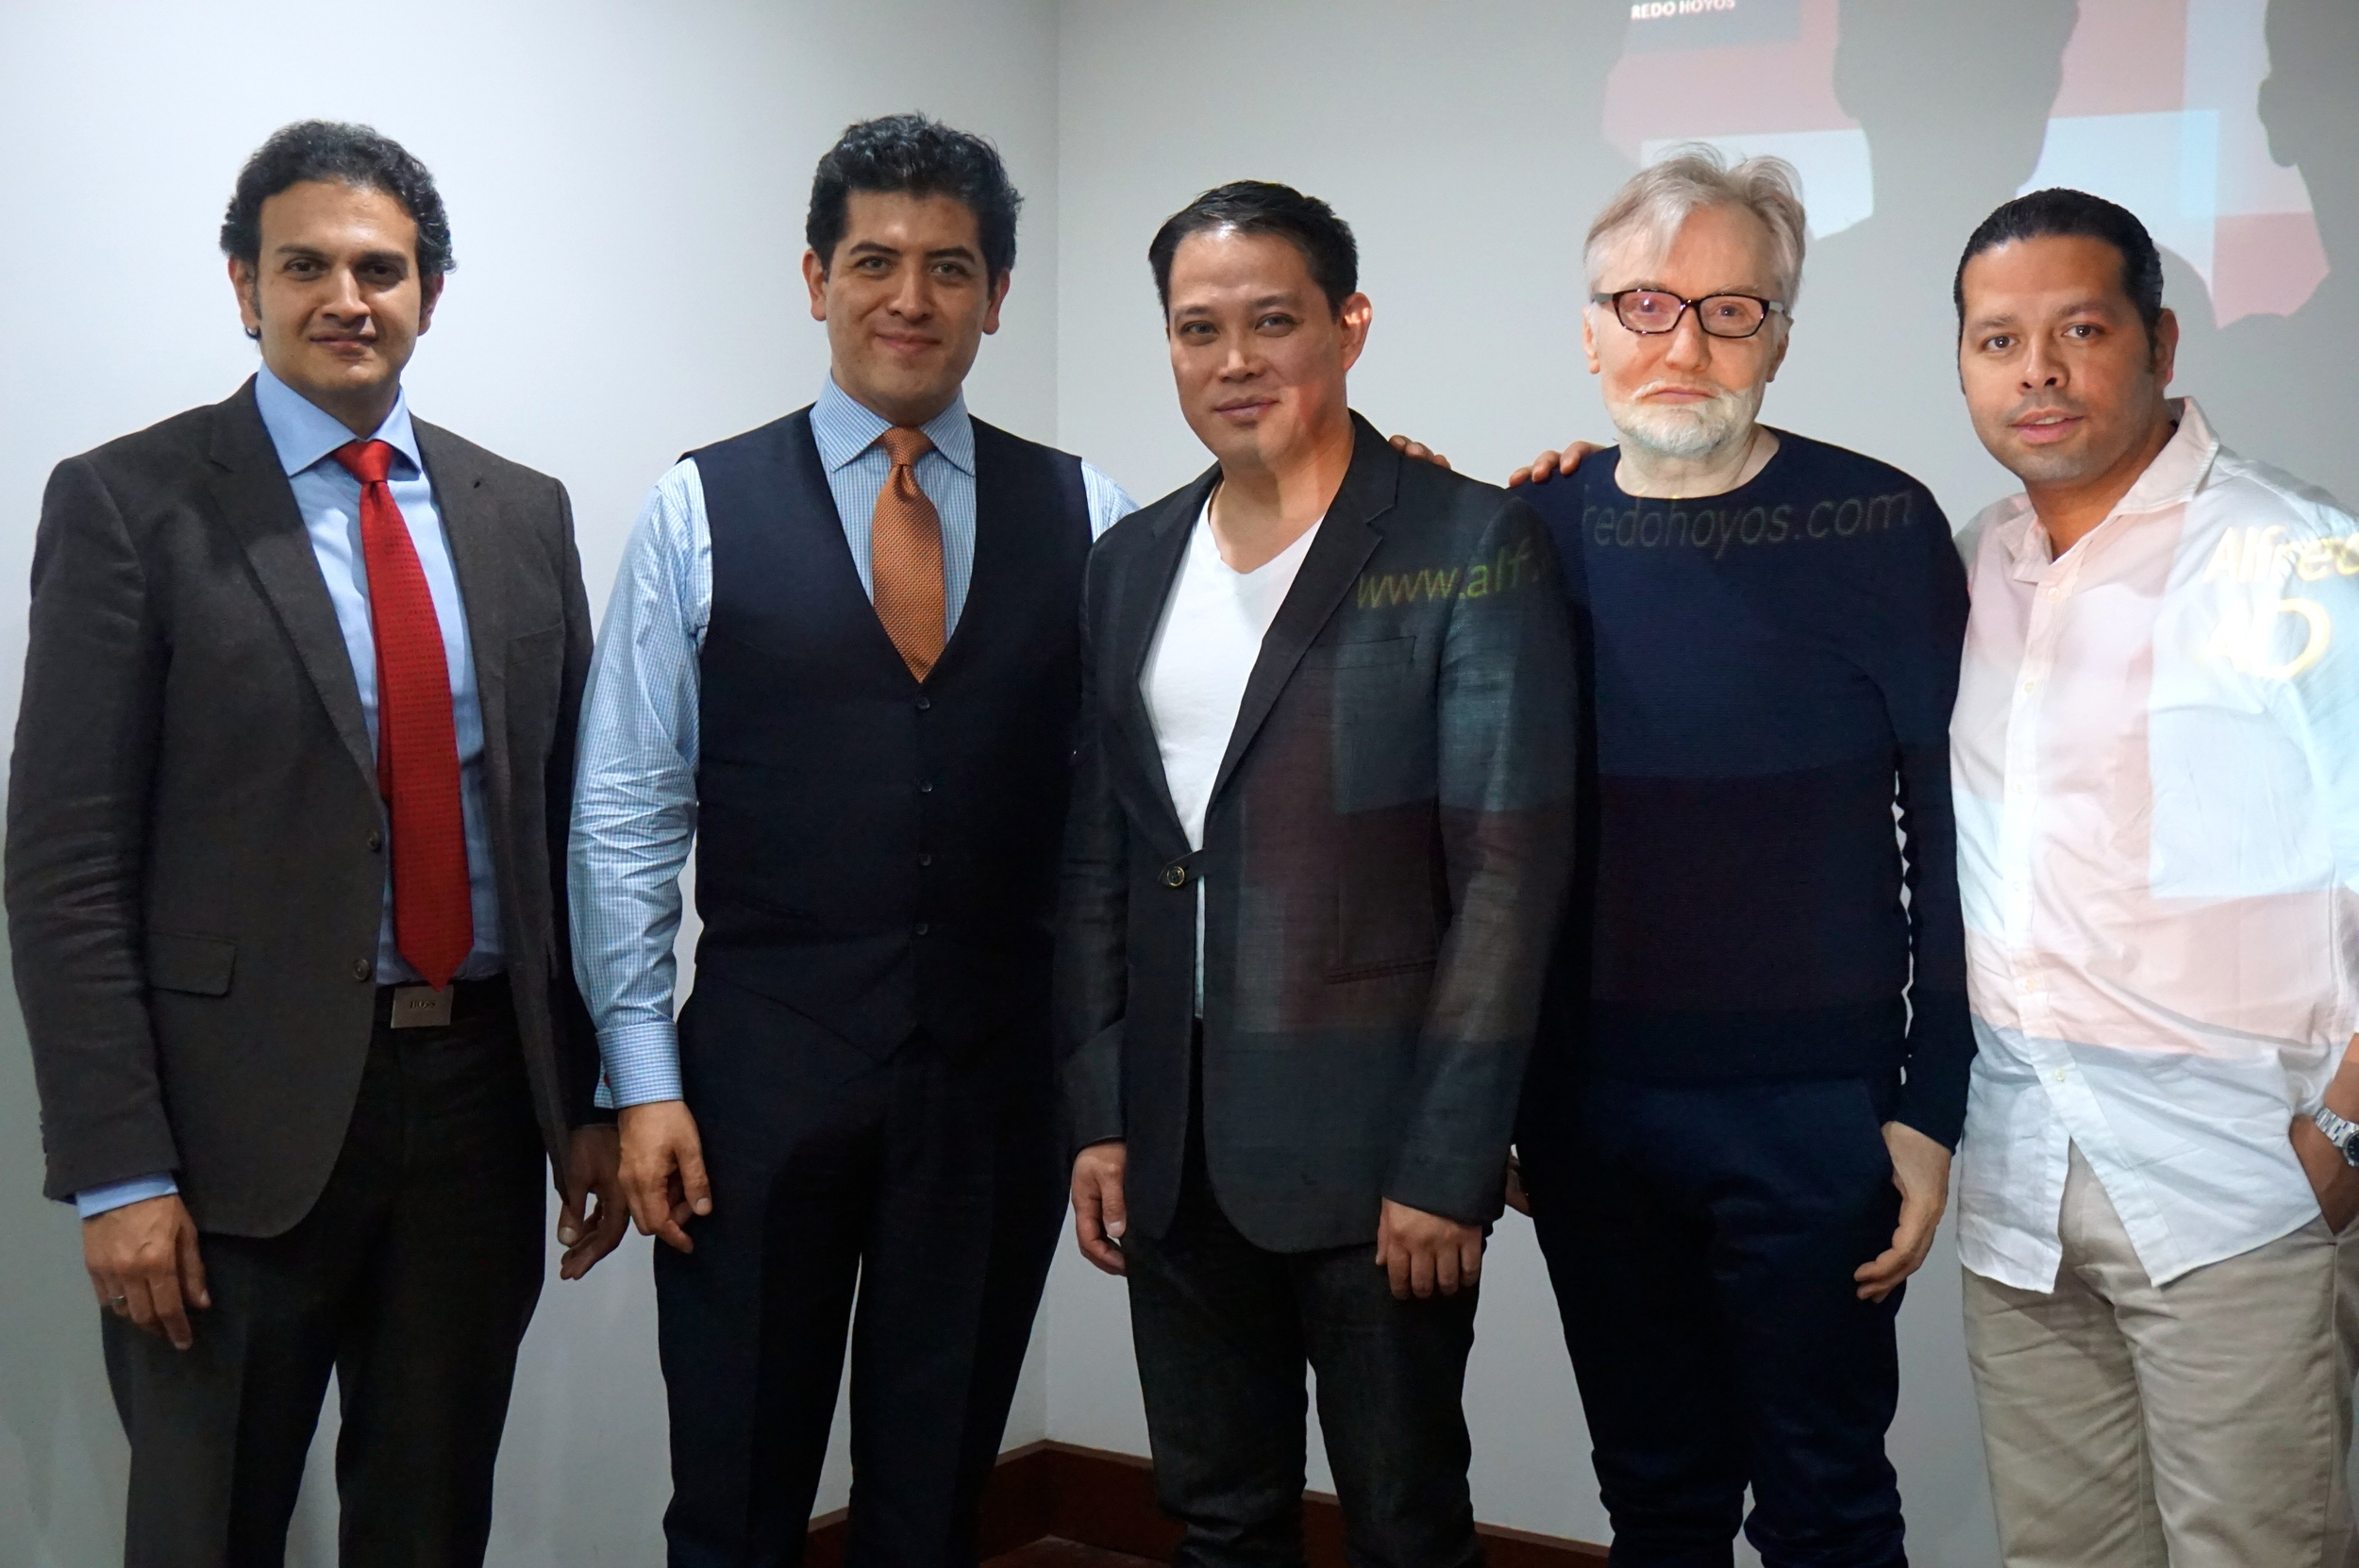 Plastic Surgeons from all over the world who perform the 4D VASER Hi-Def Liposculpture. From left to right: Dr. Tahseen of Egypt;Dr. Alfredo Hoyos of Colombia;Dr. De La Cruz of Houston, TX; Dr. Planinsek of Slovenia; and Dr. Acuna of Spain.